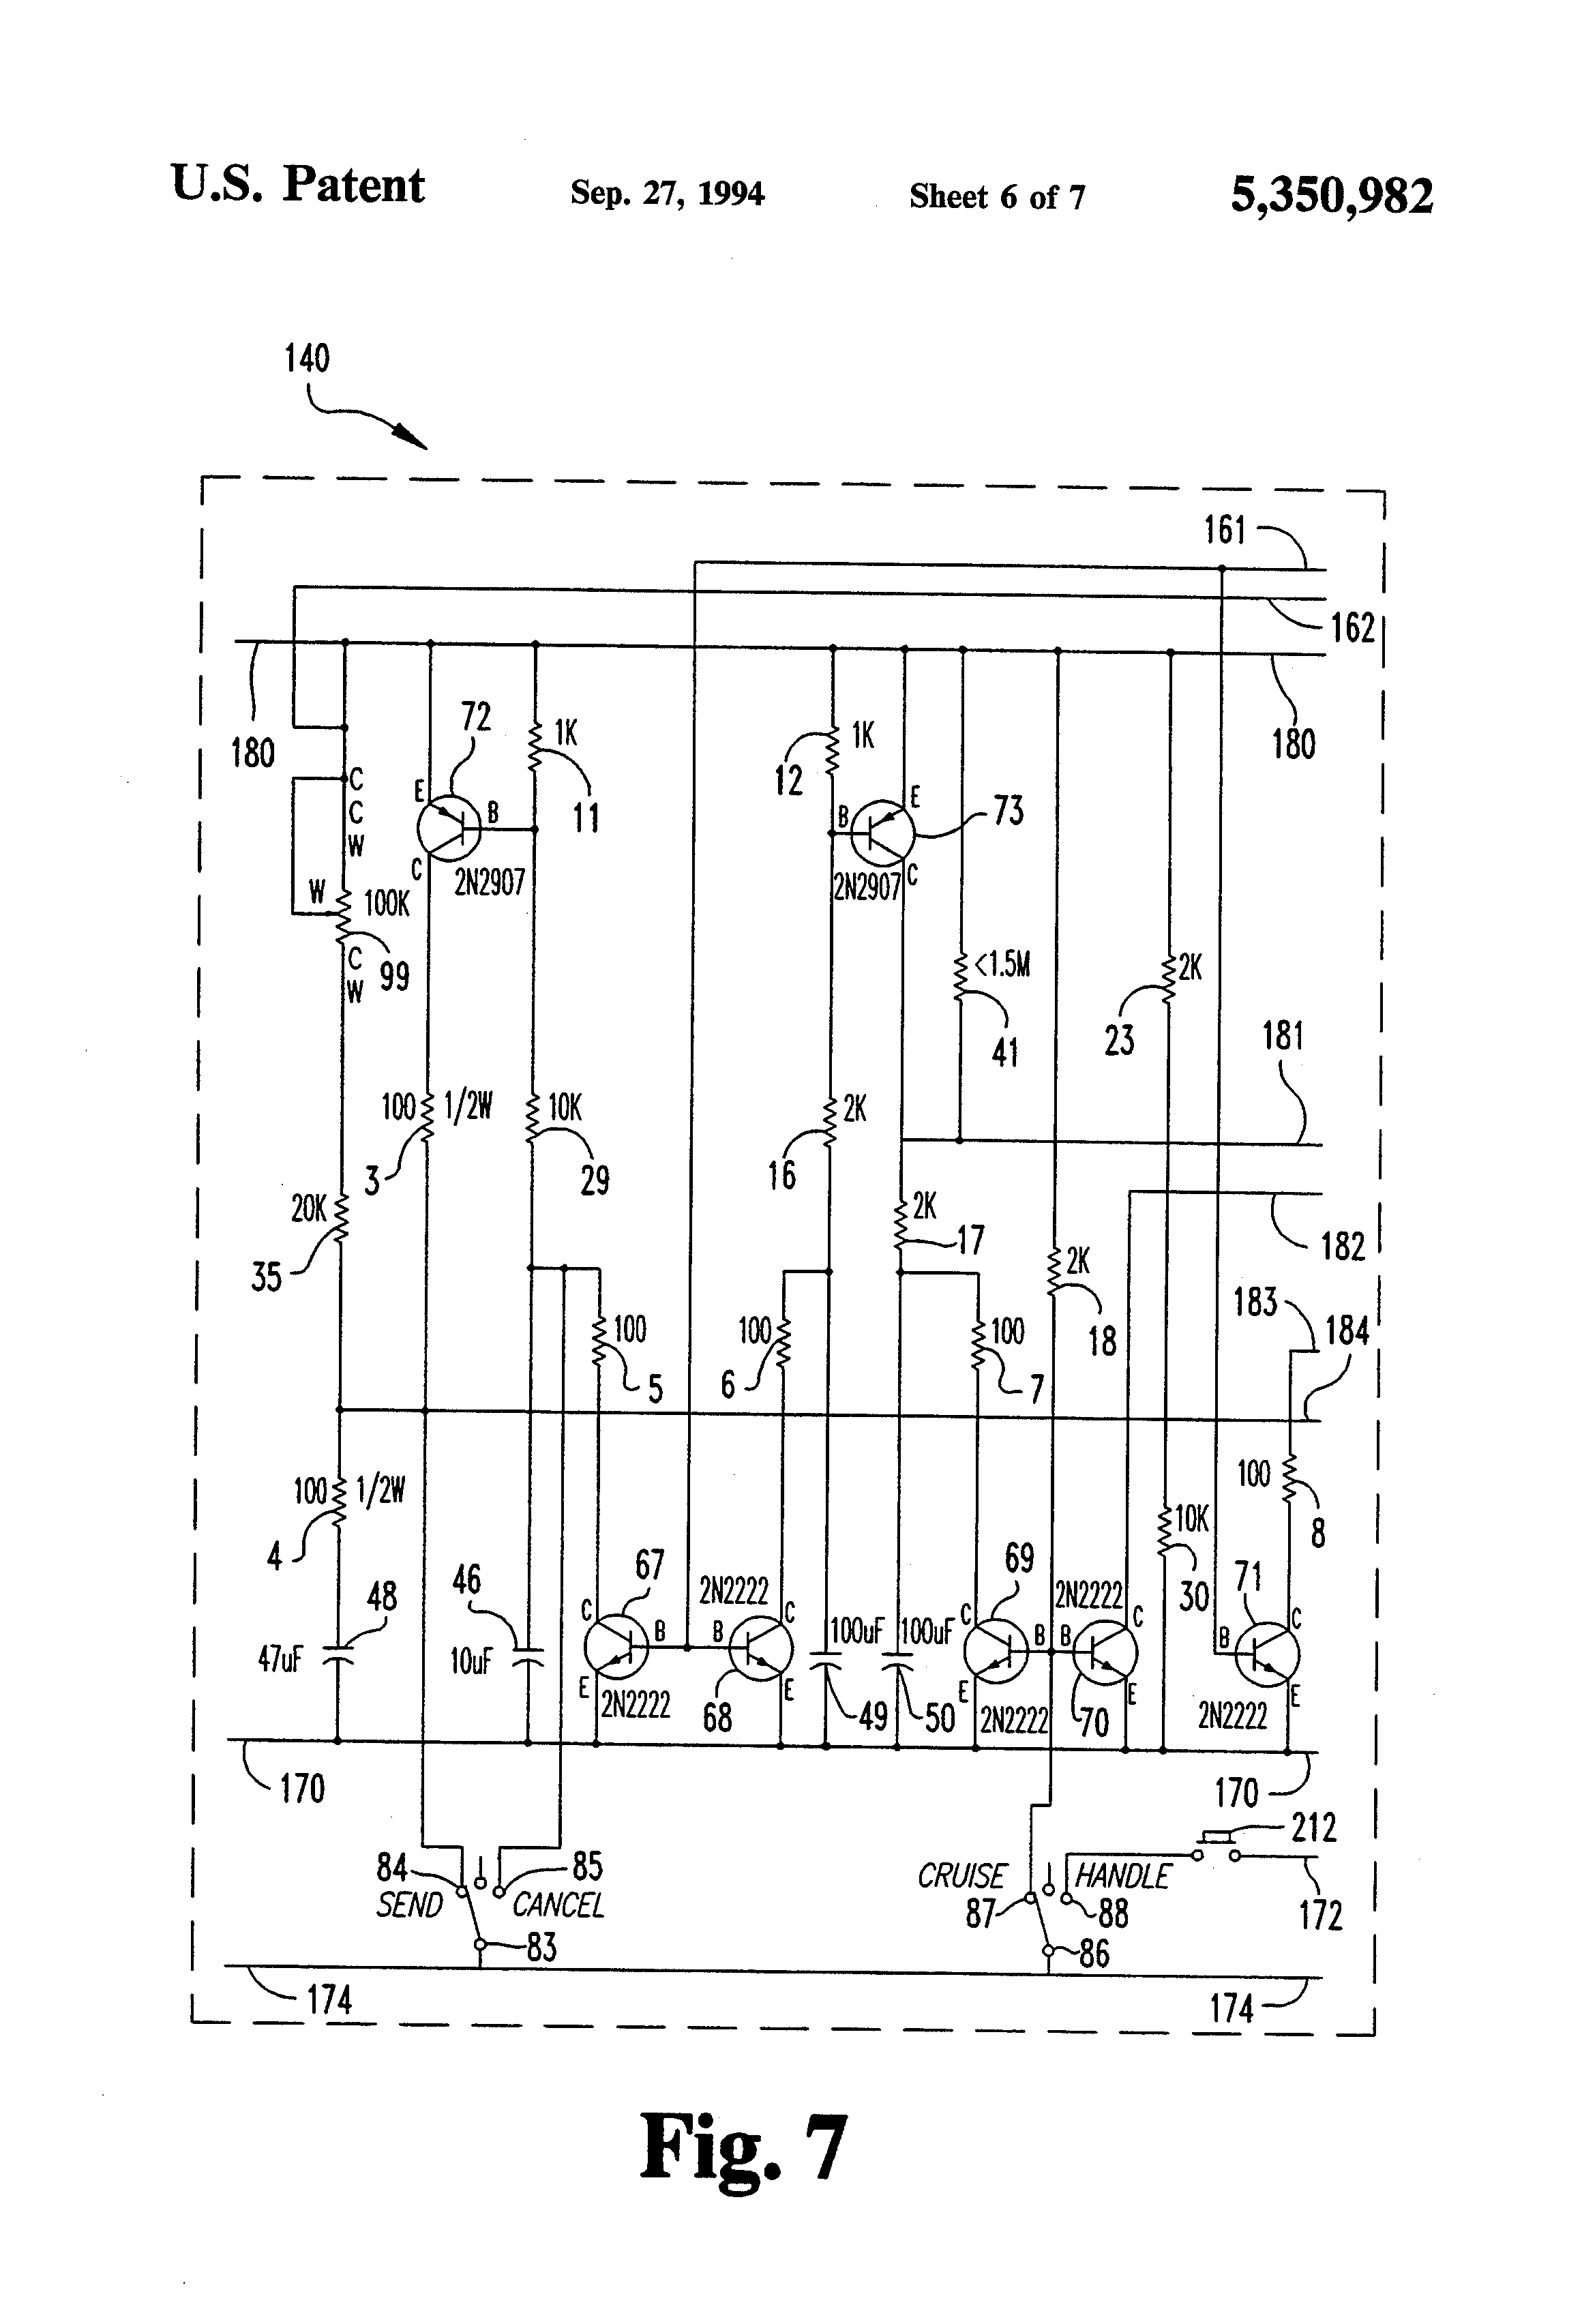 Powakaddy Potentiometer Wiring Diagram 38 Images Motor Us5350982 6 Patent Motorized Golf Bag Cart Circuit And Apparatus At